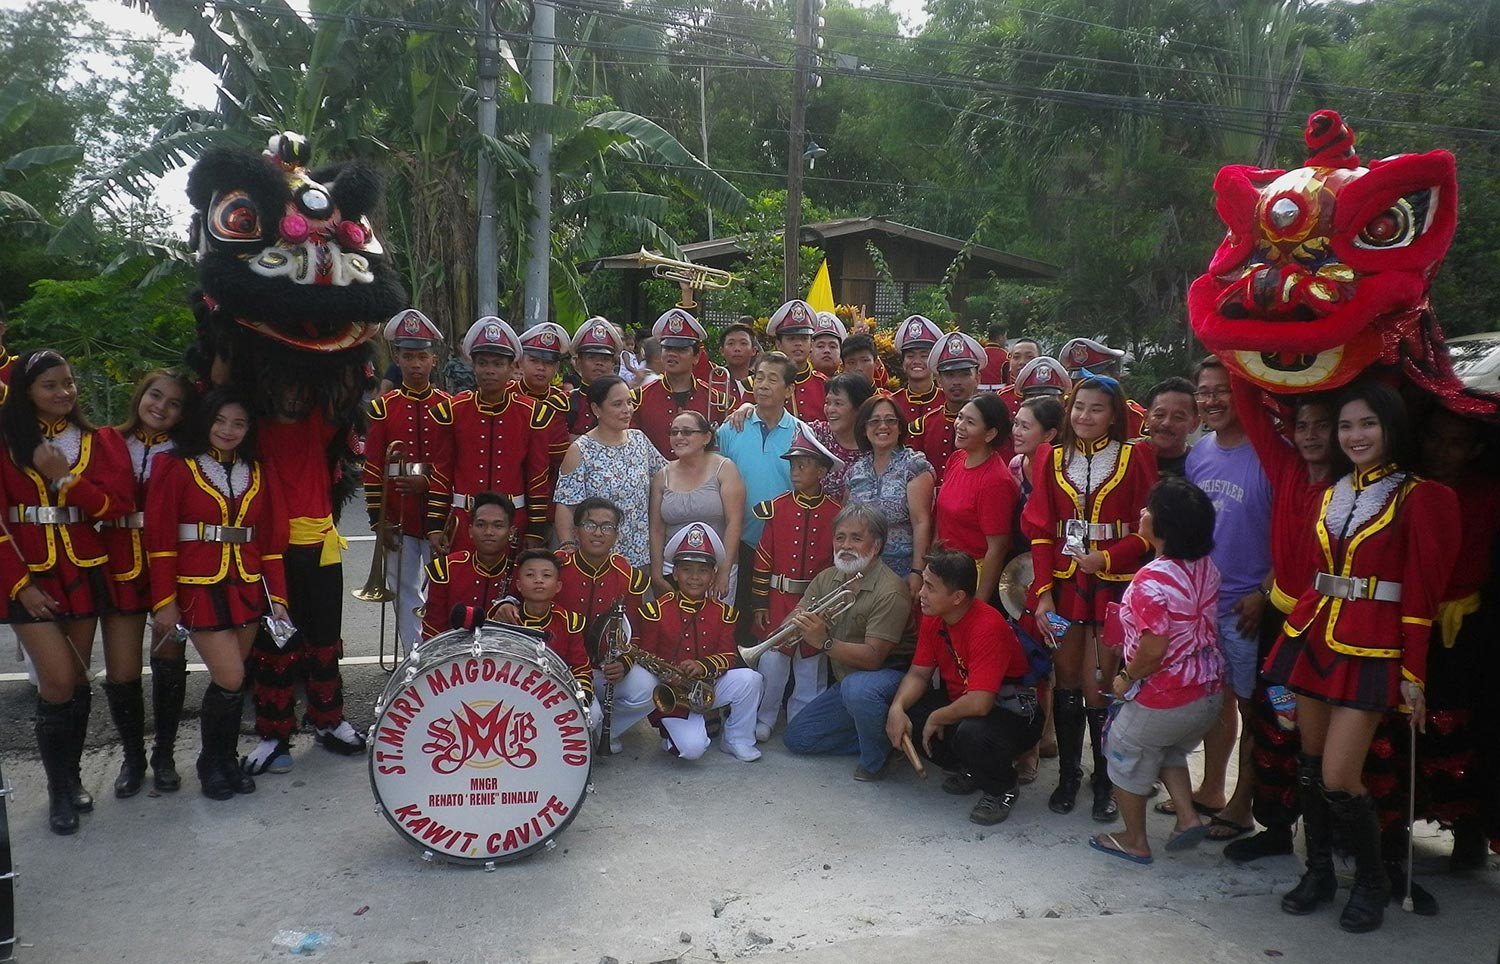 Two highly acclaimed performing groups were 'imported' by the organizers to liven up the June 1 Cupang fiesta--the St. Mary Magdalene marching band of Kawit, Cavite, and a Wushu Lion Dance team from Quezon City headed by Artemio Montes and Mary Ann Jasa -- shown here with members of the  Angkan nina Anong at Rosa . (Photo by Ed Maranan)